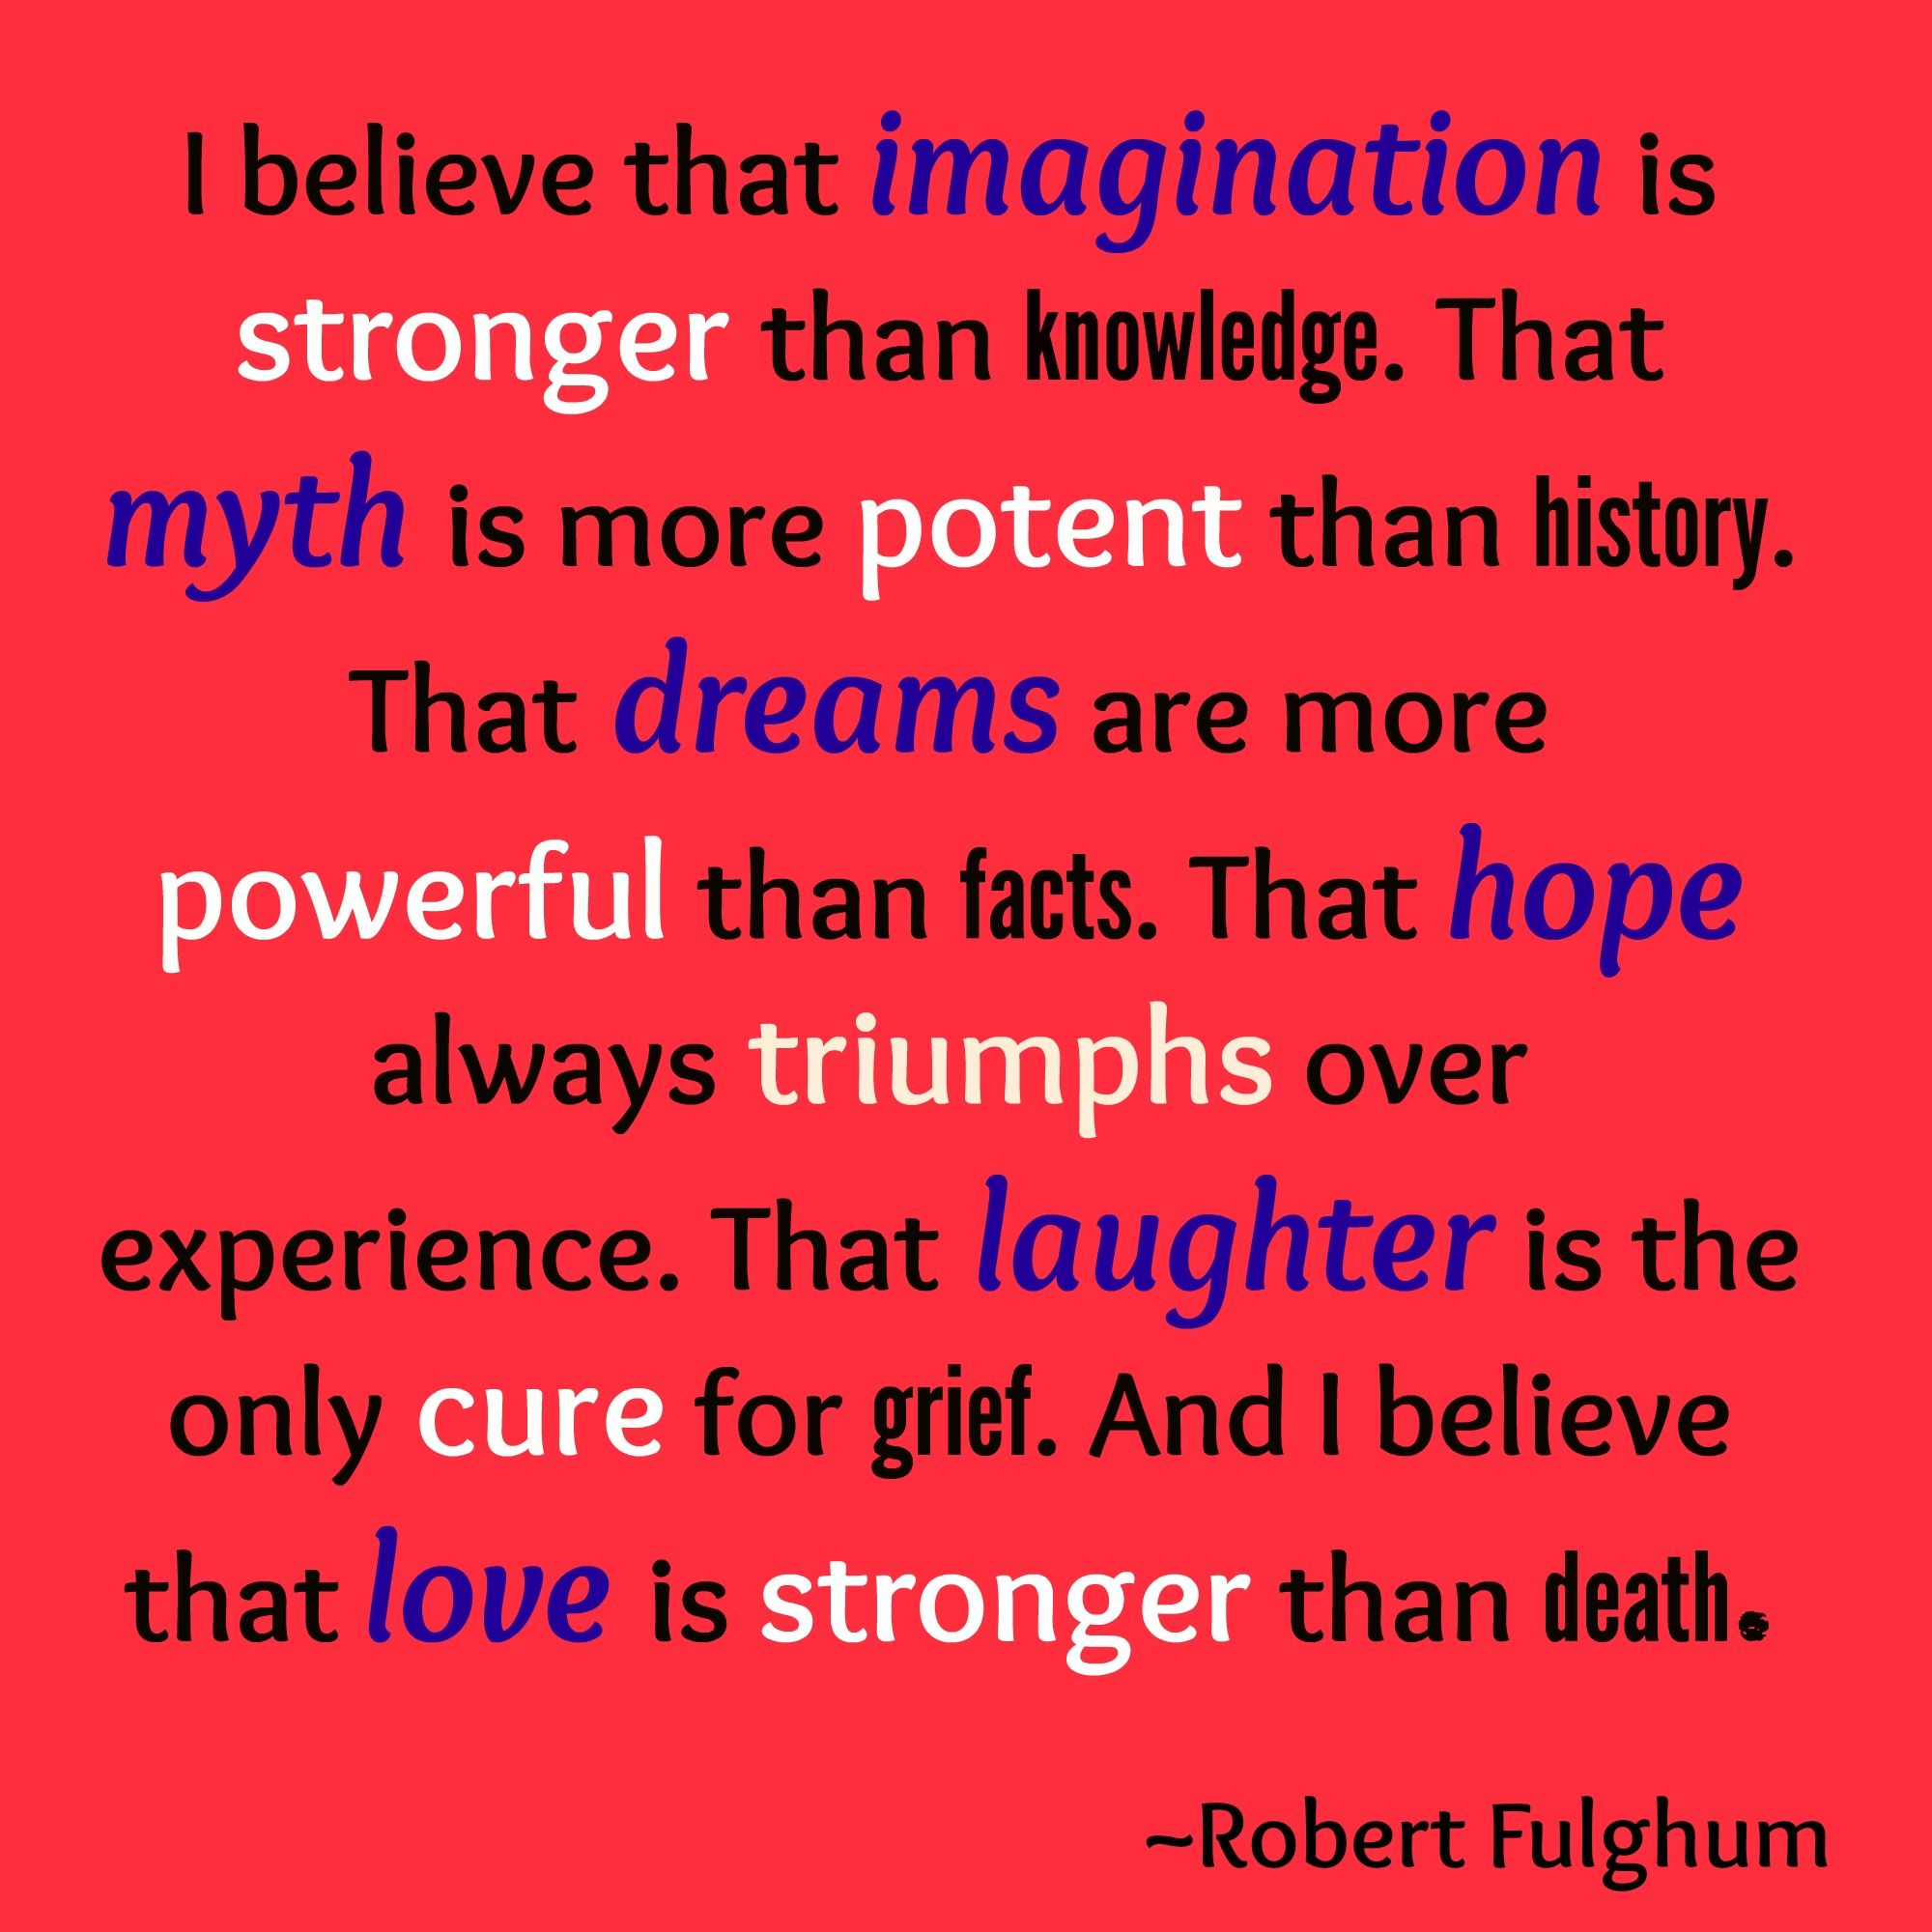 The Inspirational Quote for the Week of October 3nd - October 3th